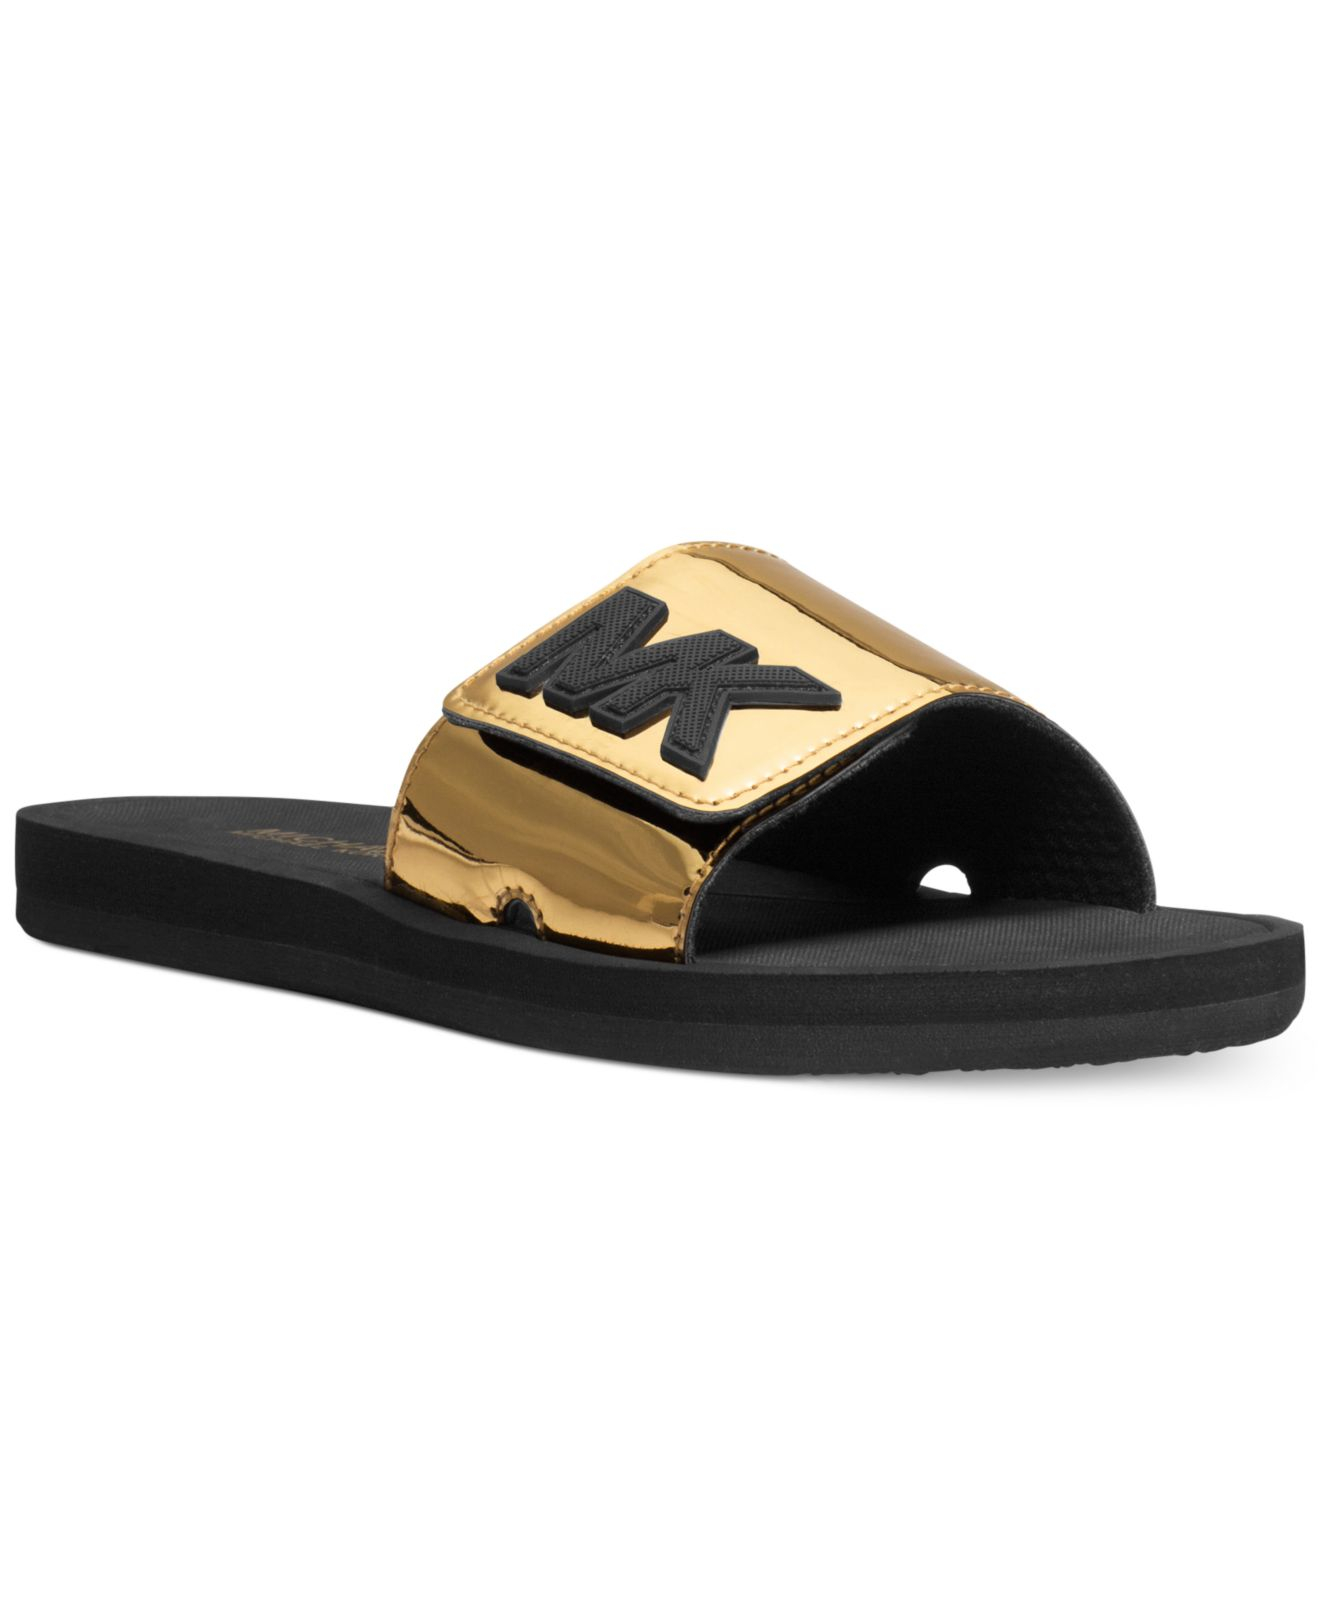 Michael Kors Slide On Shoes For Women